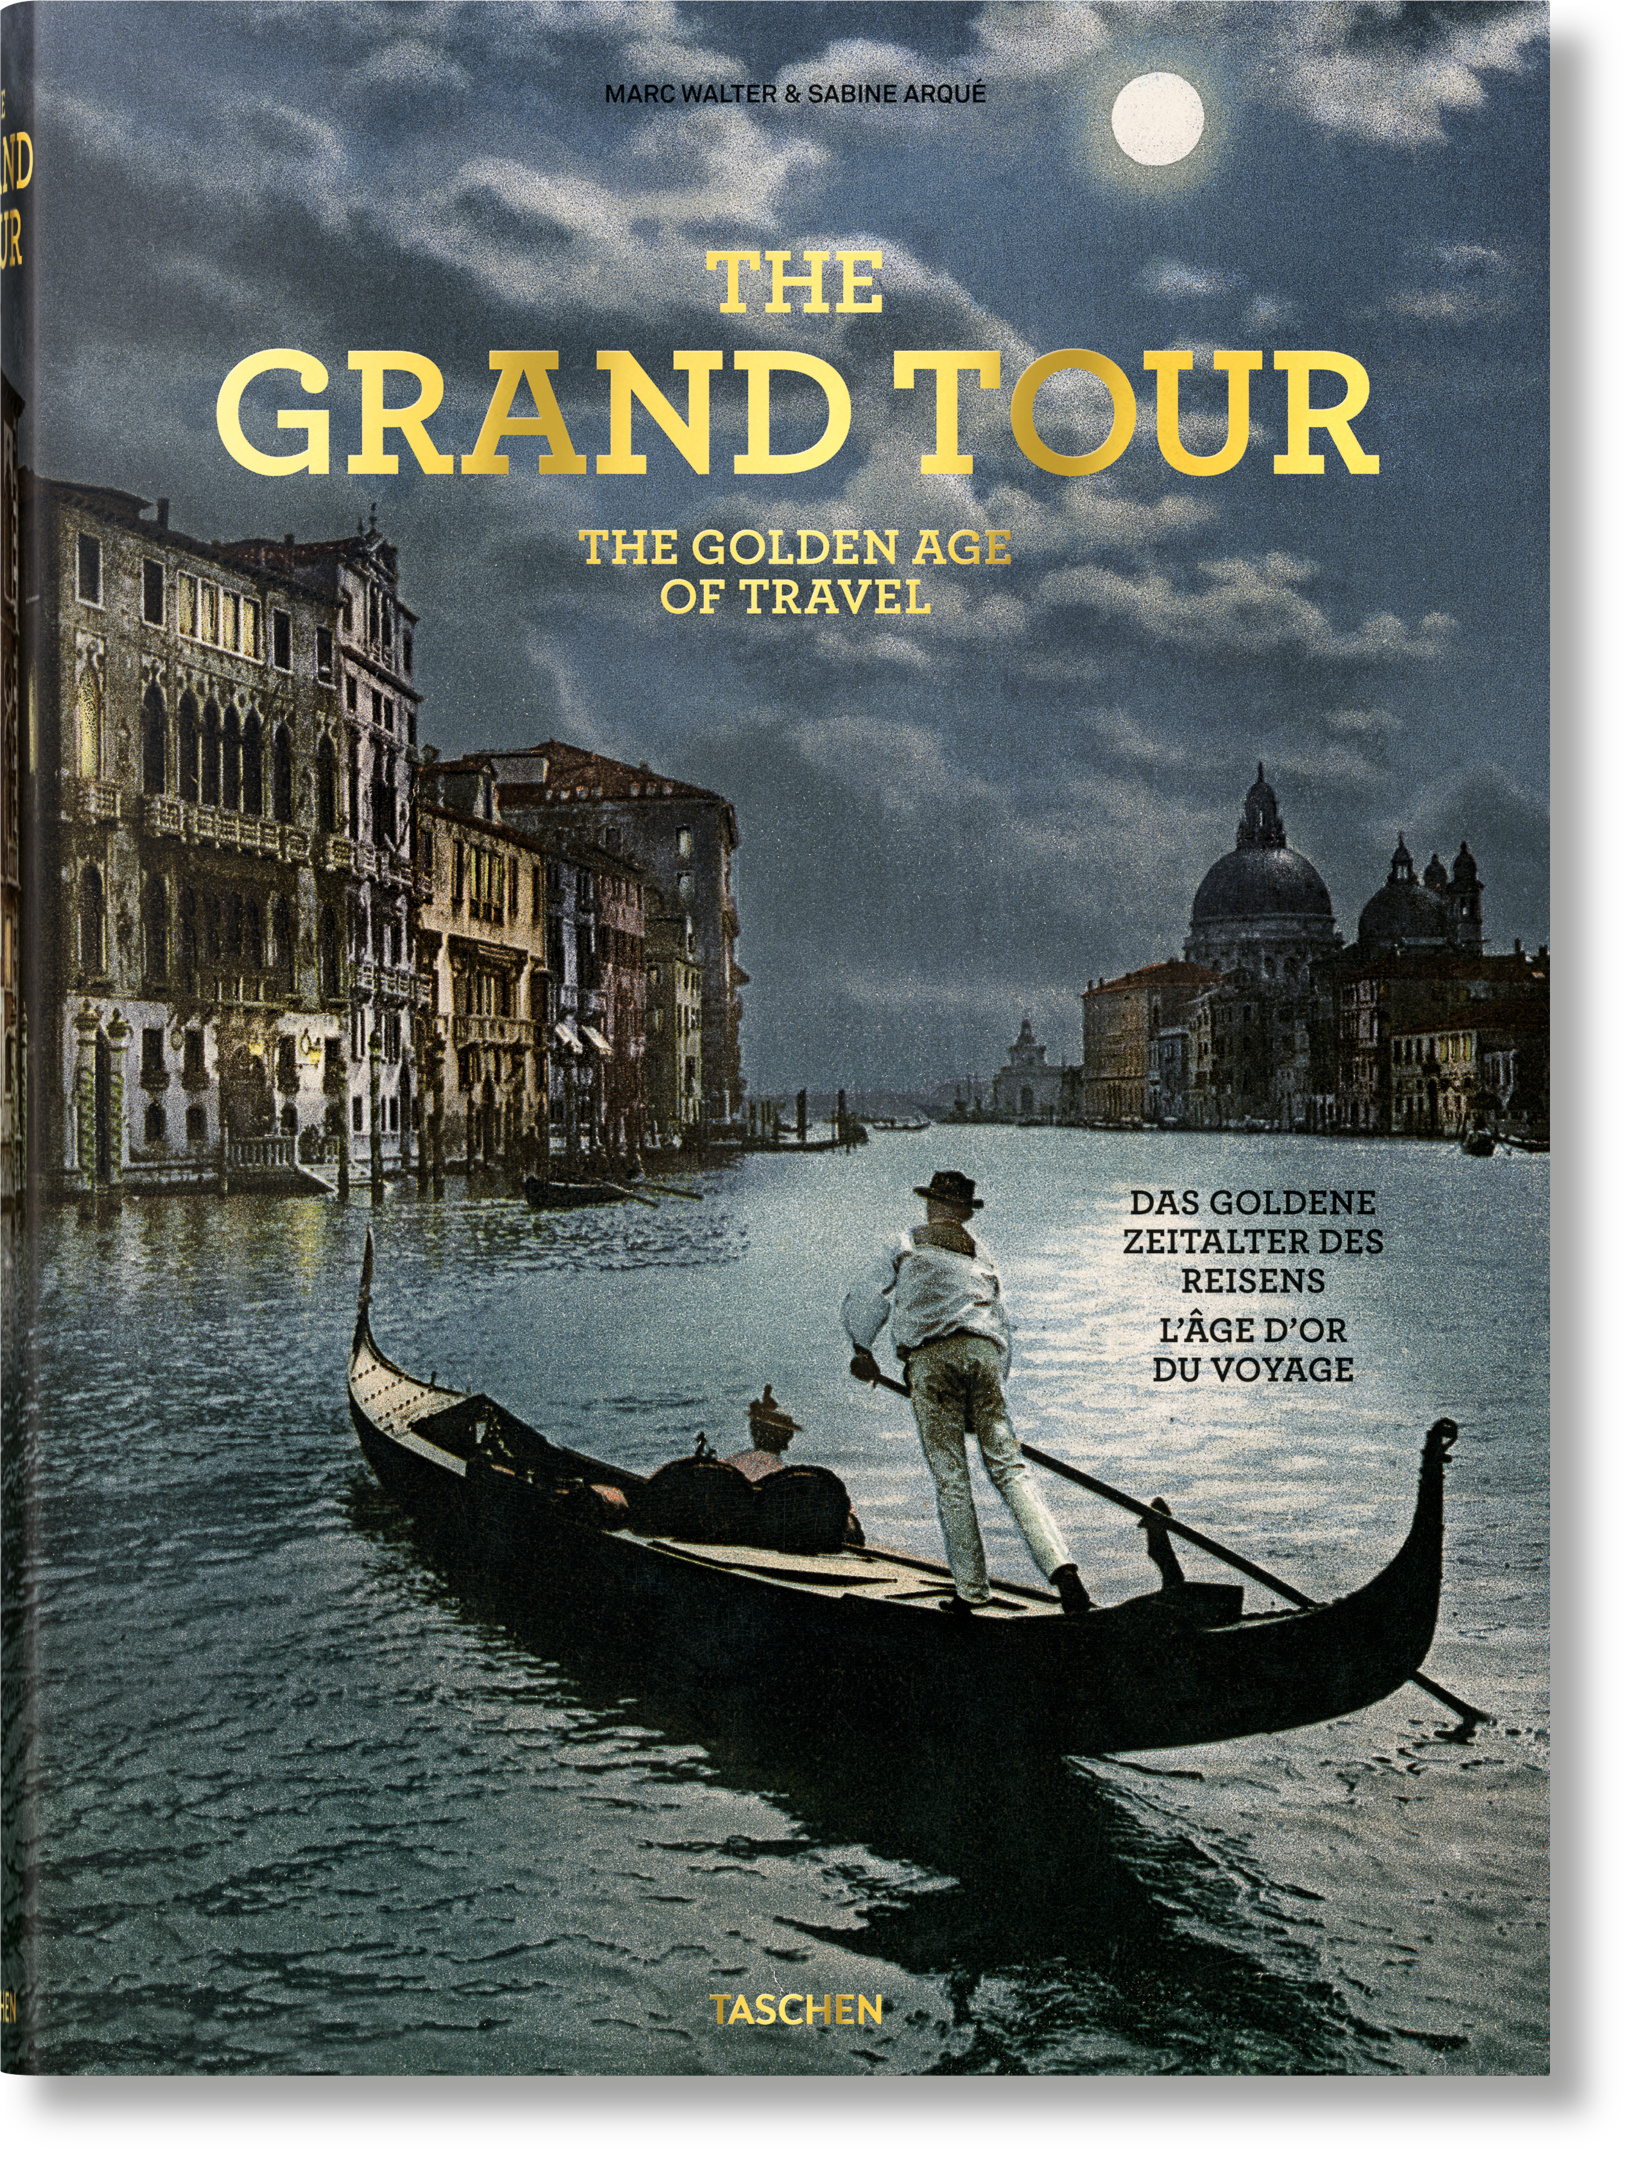 The Grand Tour. The Golden Age of Travel - TASCHEN Books